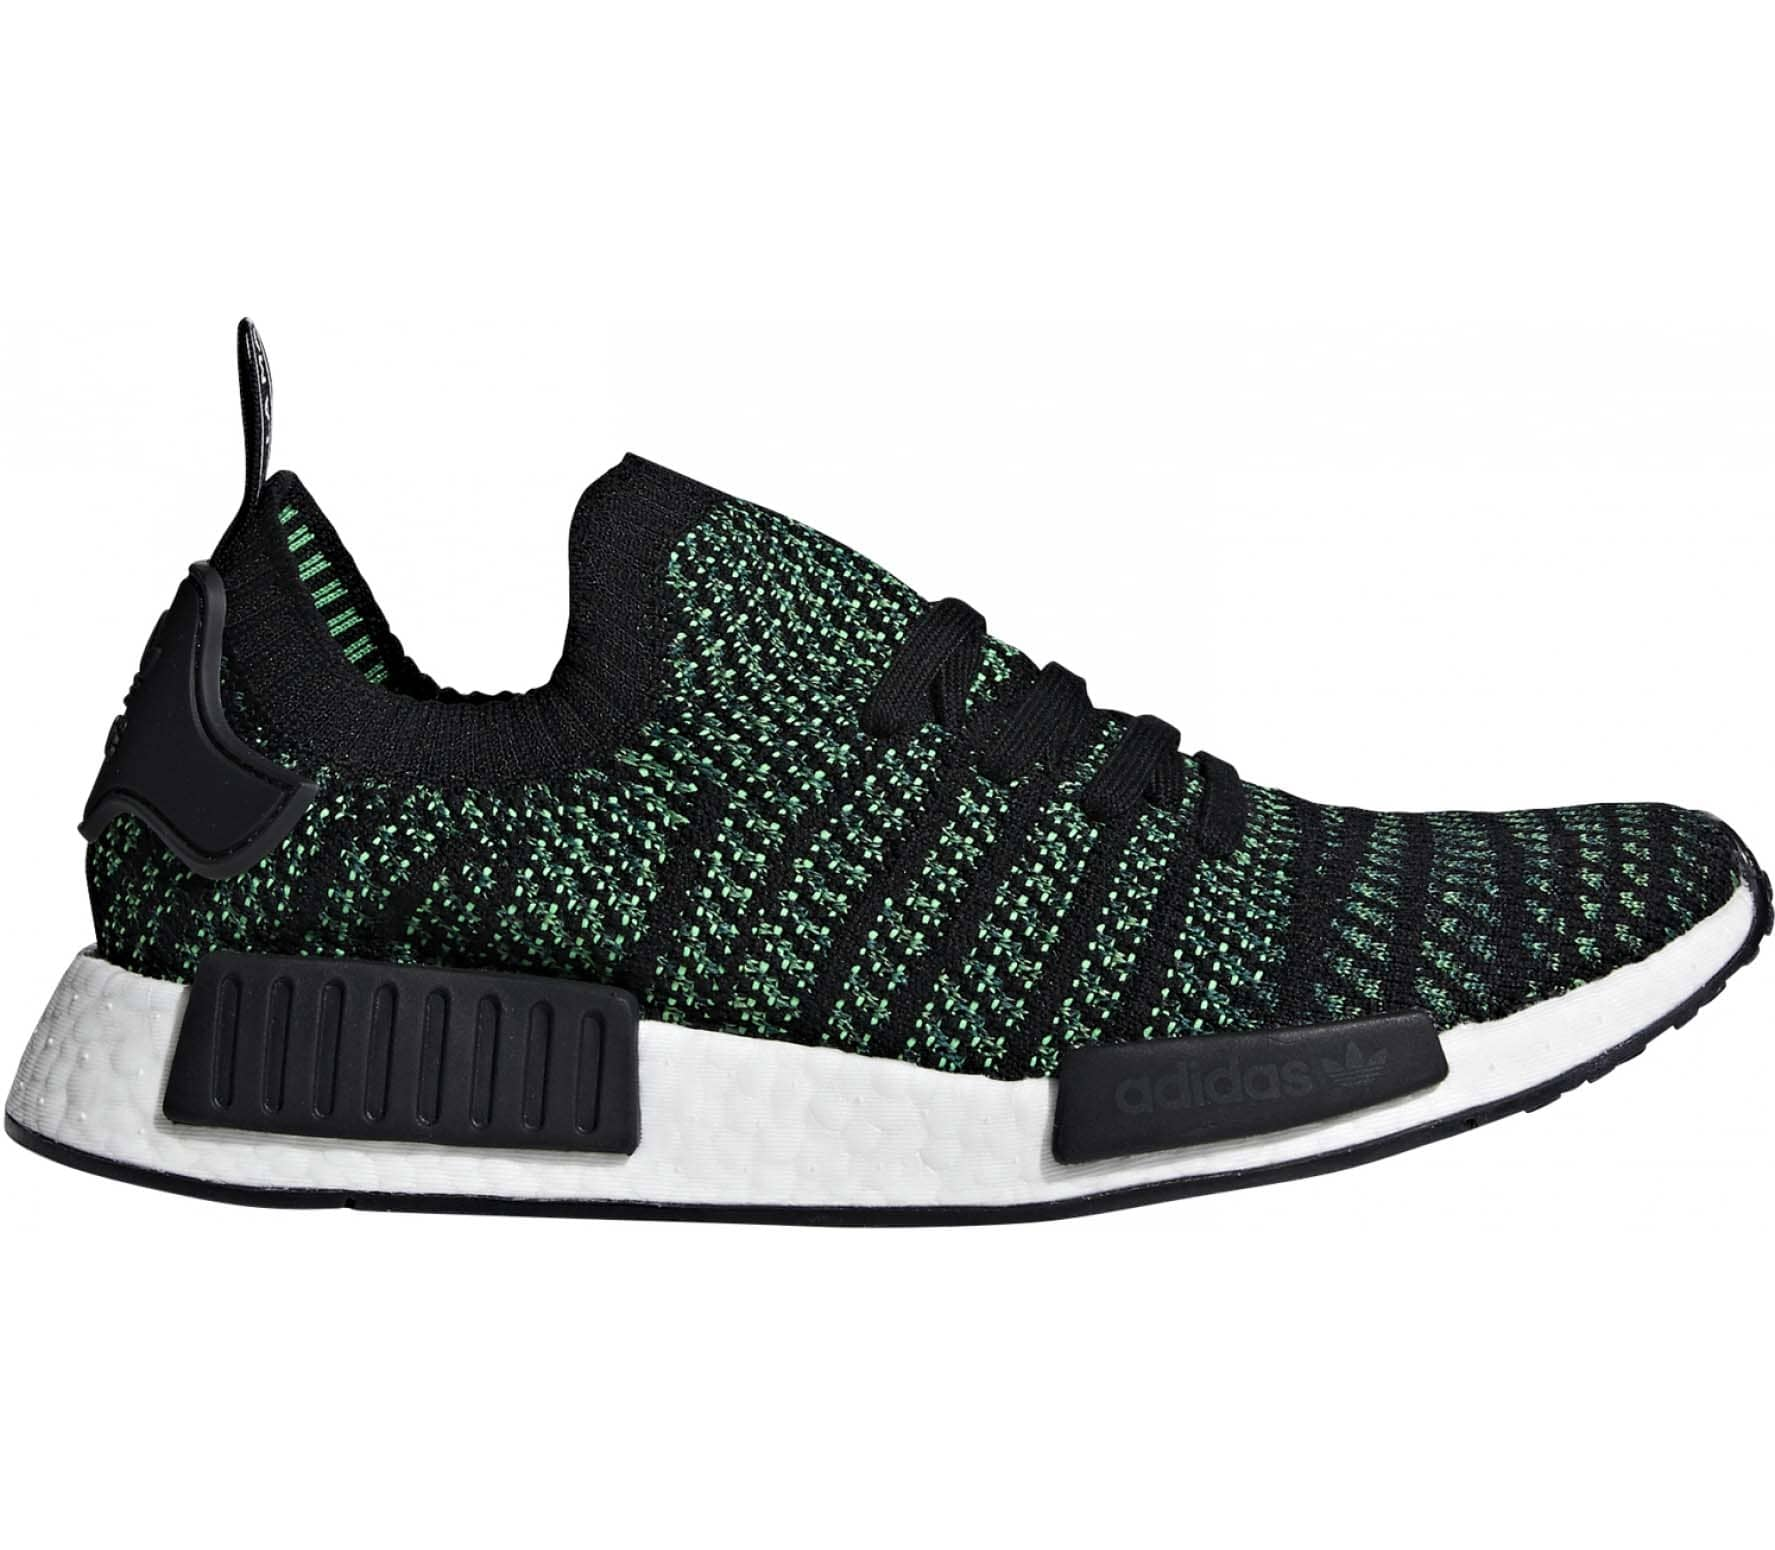 Adidas Originals Nmd R1 Stlt Primeknit Men S Trainers Green Online